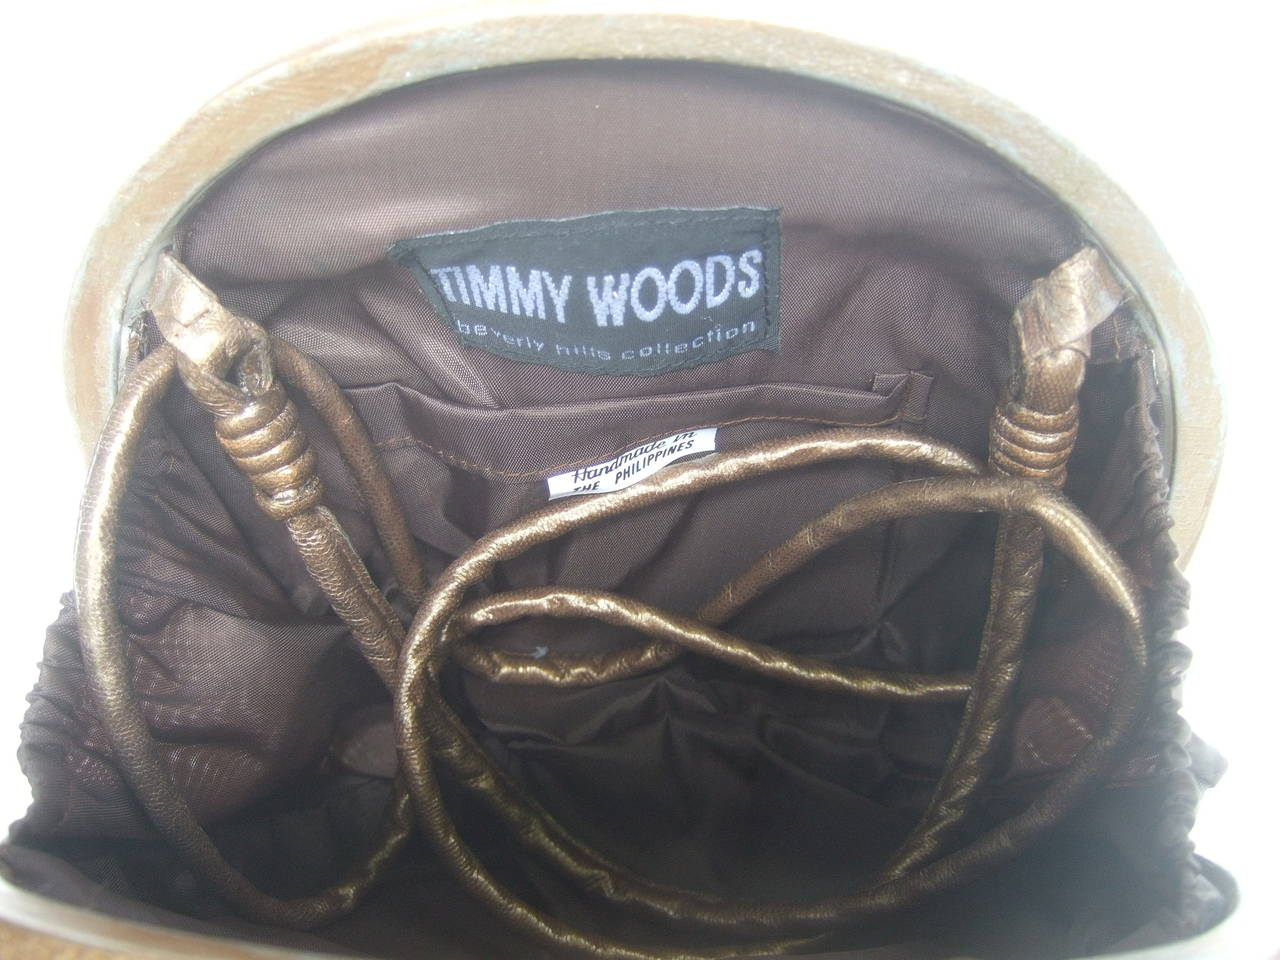 Timmy Woods Beverly Hills Artisan Wood Lion Handbag 7